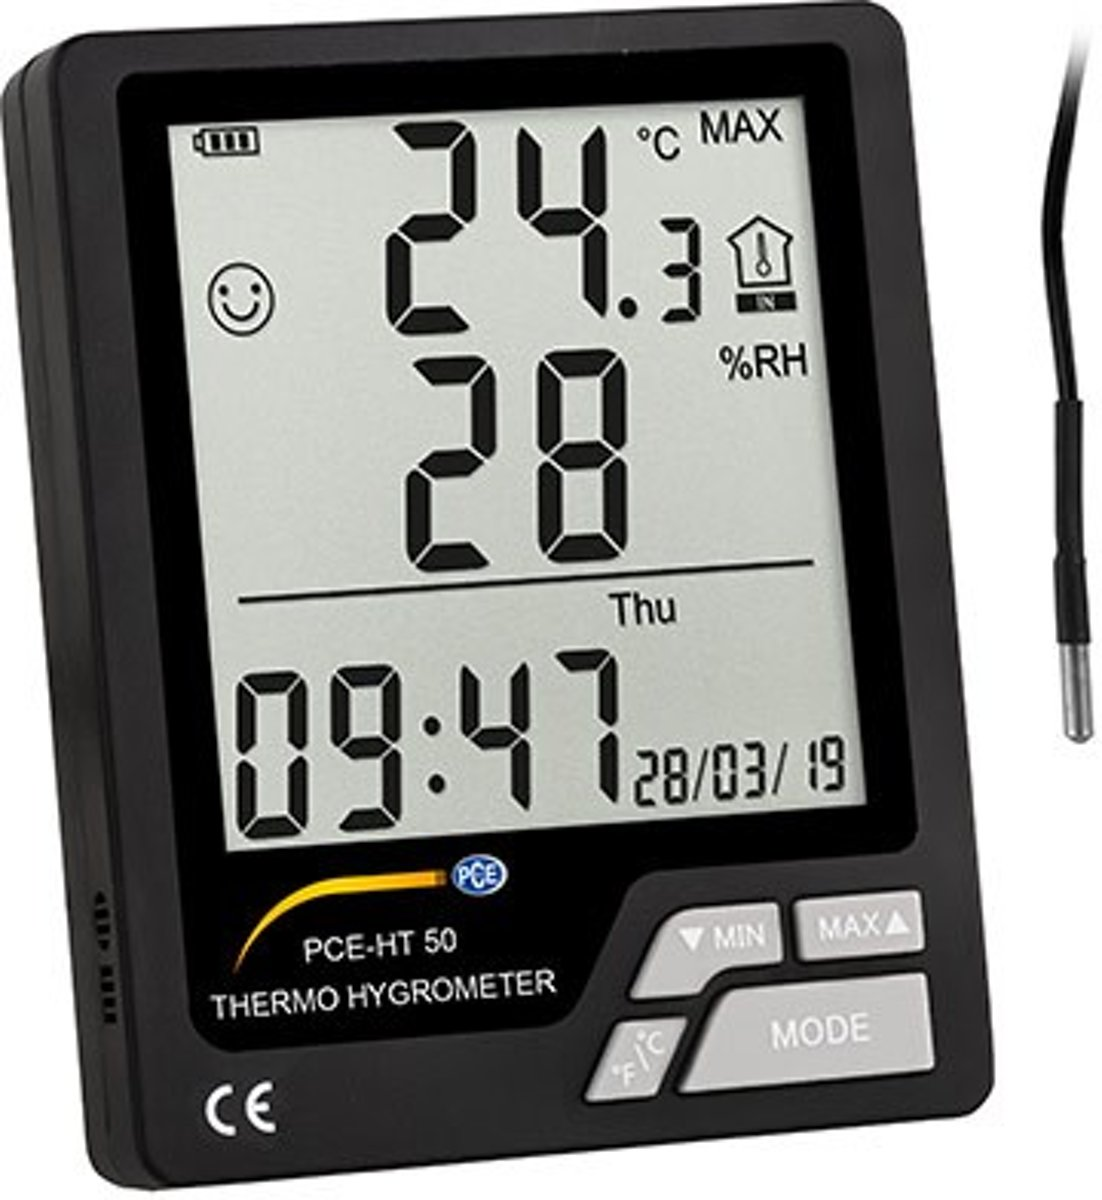 Thermo-Hygrometer PCE-HT 50 kopen